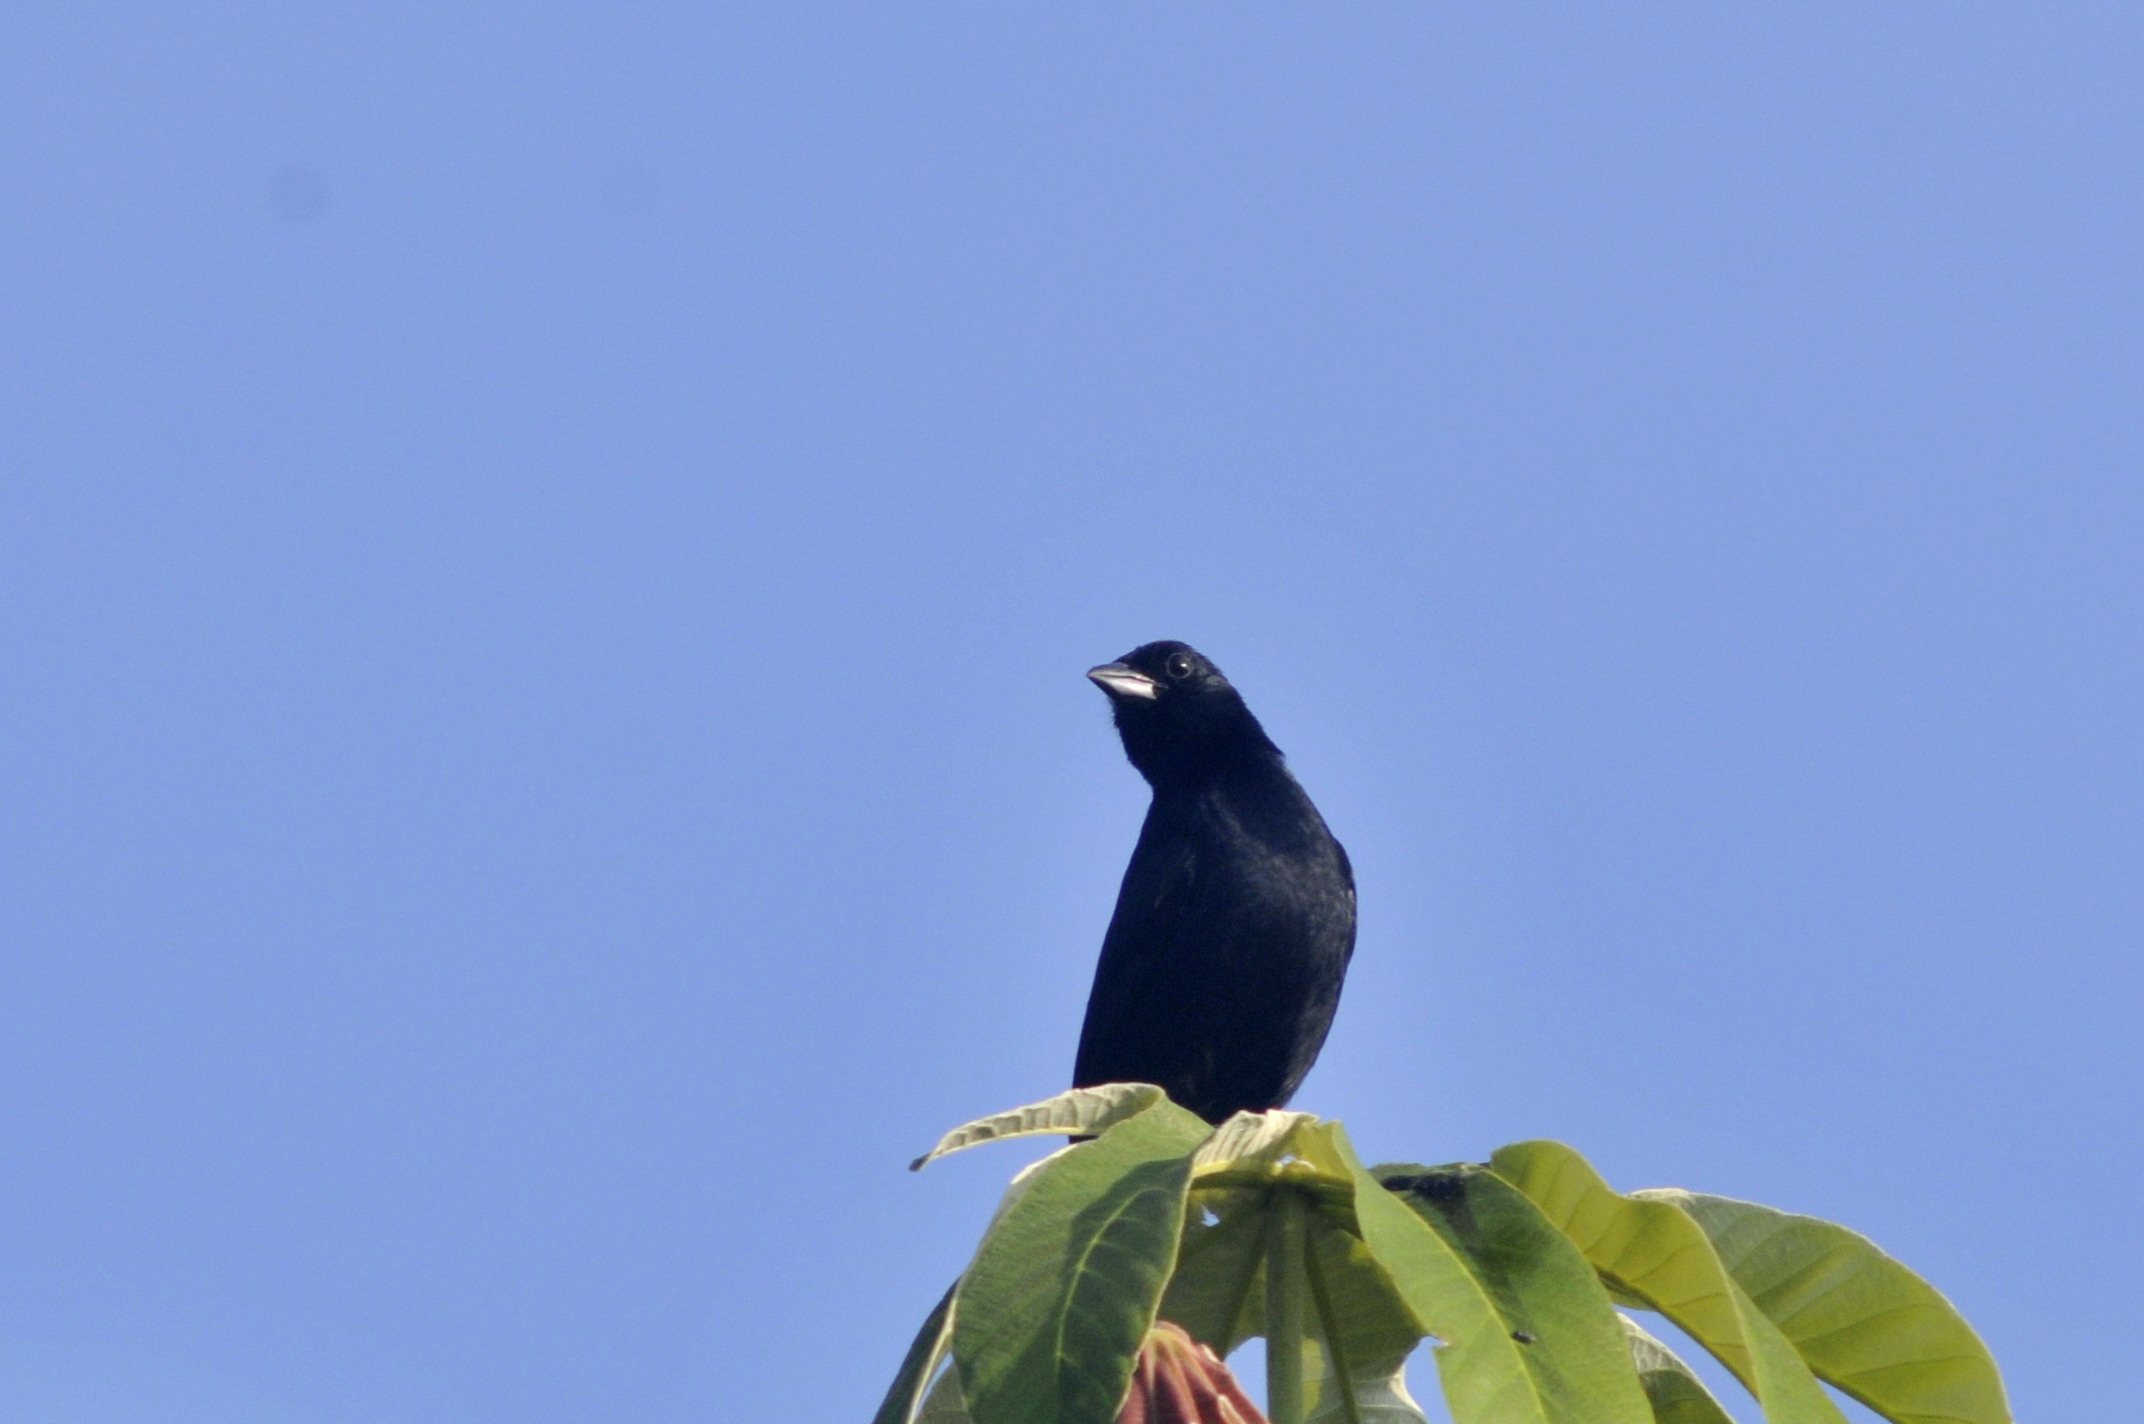 Scientific Name: White-lined Tanager - Photo: Juan Jose Chalco